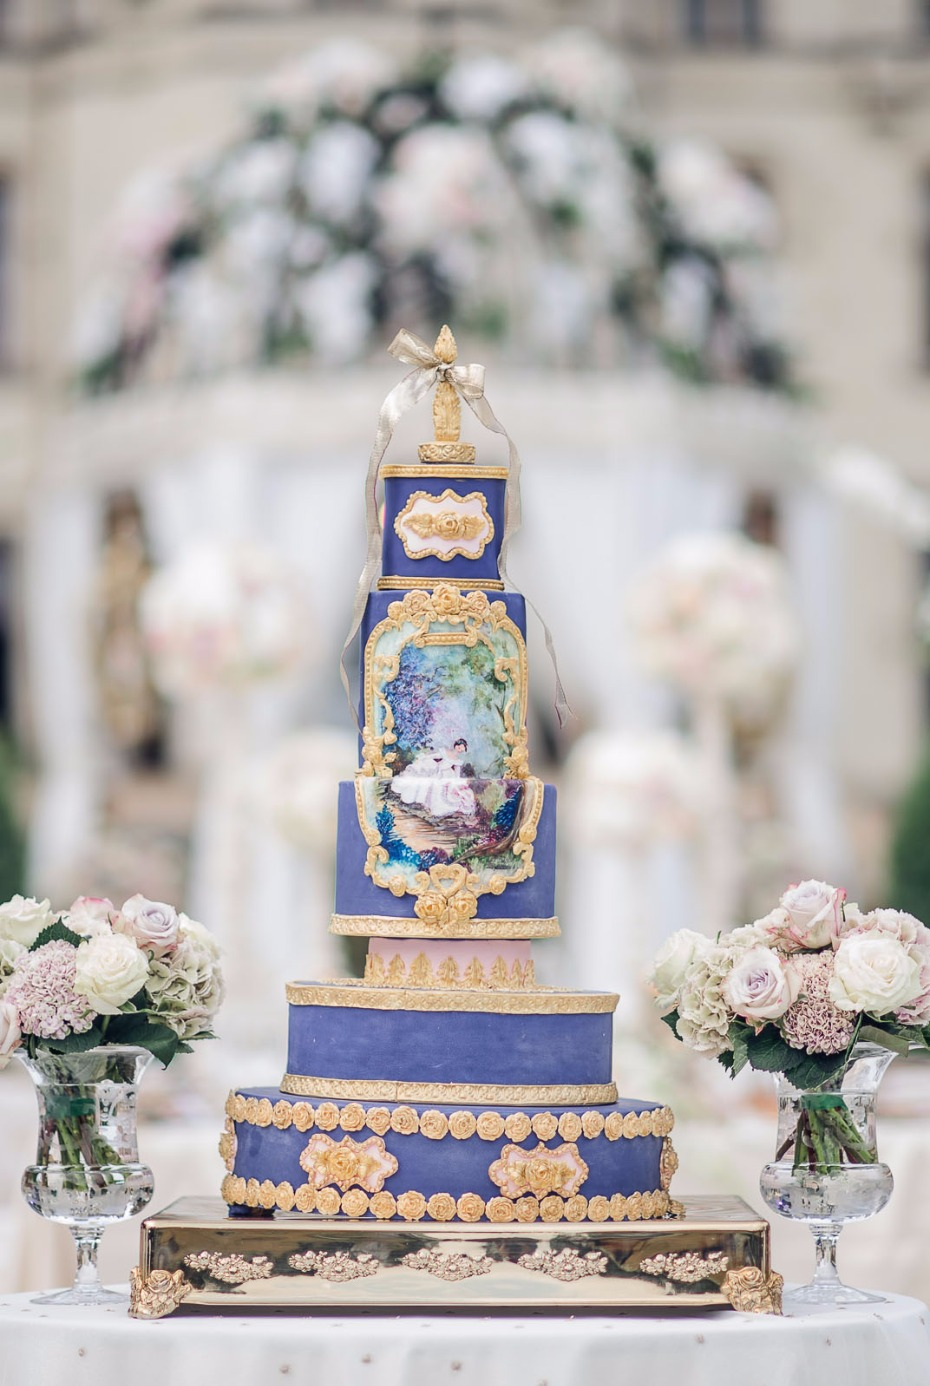 storybook fantasy wedding cake in purple and gold